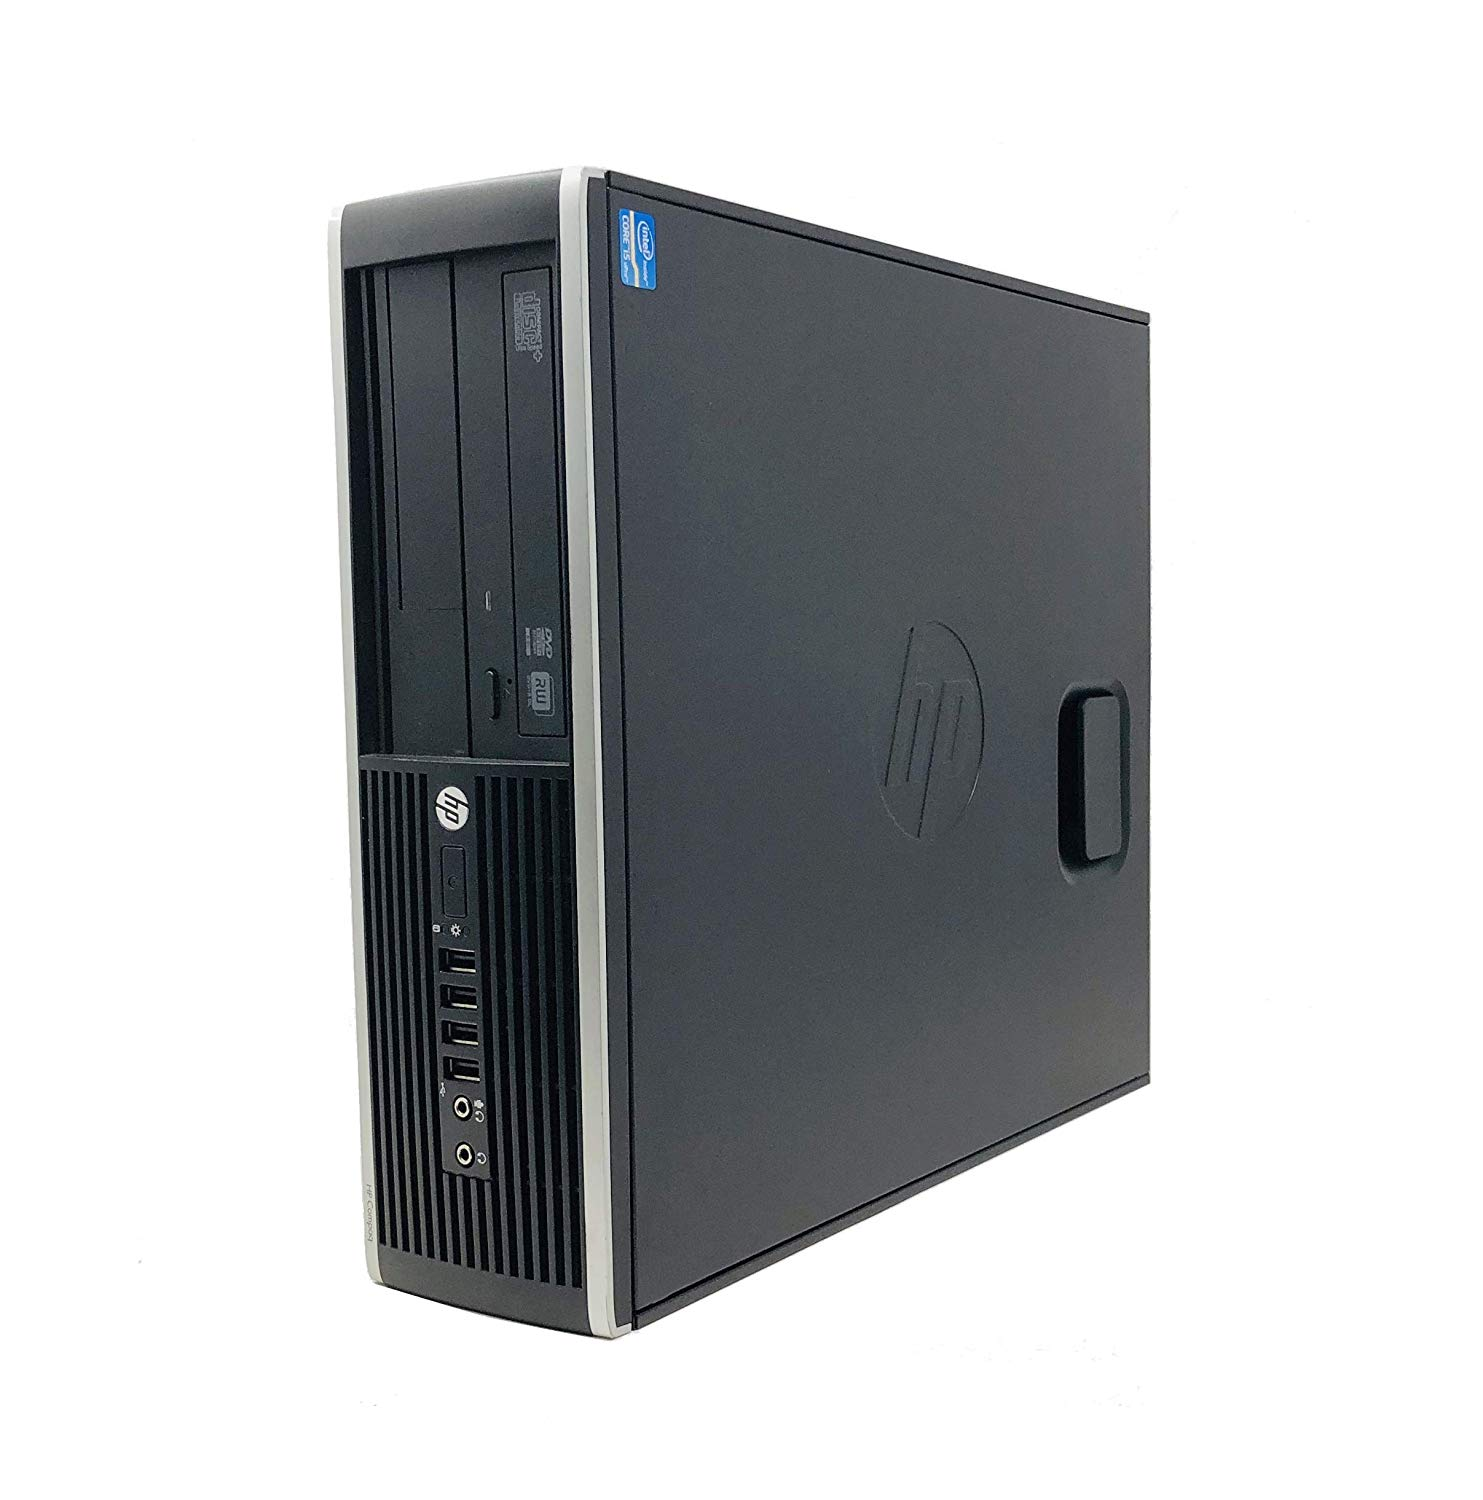 HP 8200 - Ordenador de sobremesa (<font><b>i5</b></font>-<font><b>2400</b></font>, 8GB RAM, HDD 250GB, DVD, Windows 10 HOME) - Negro (Reacondicionado) image